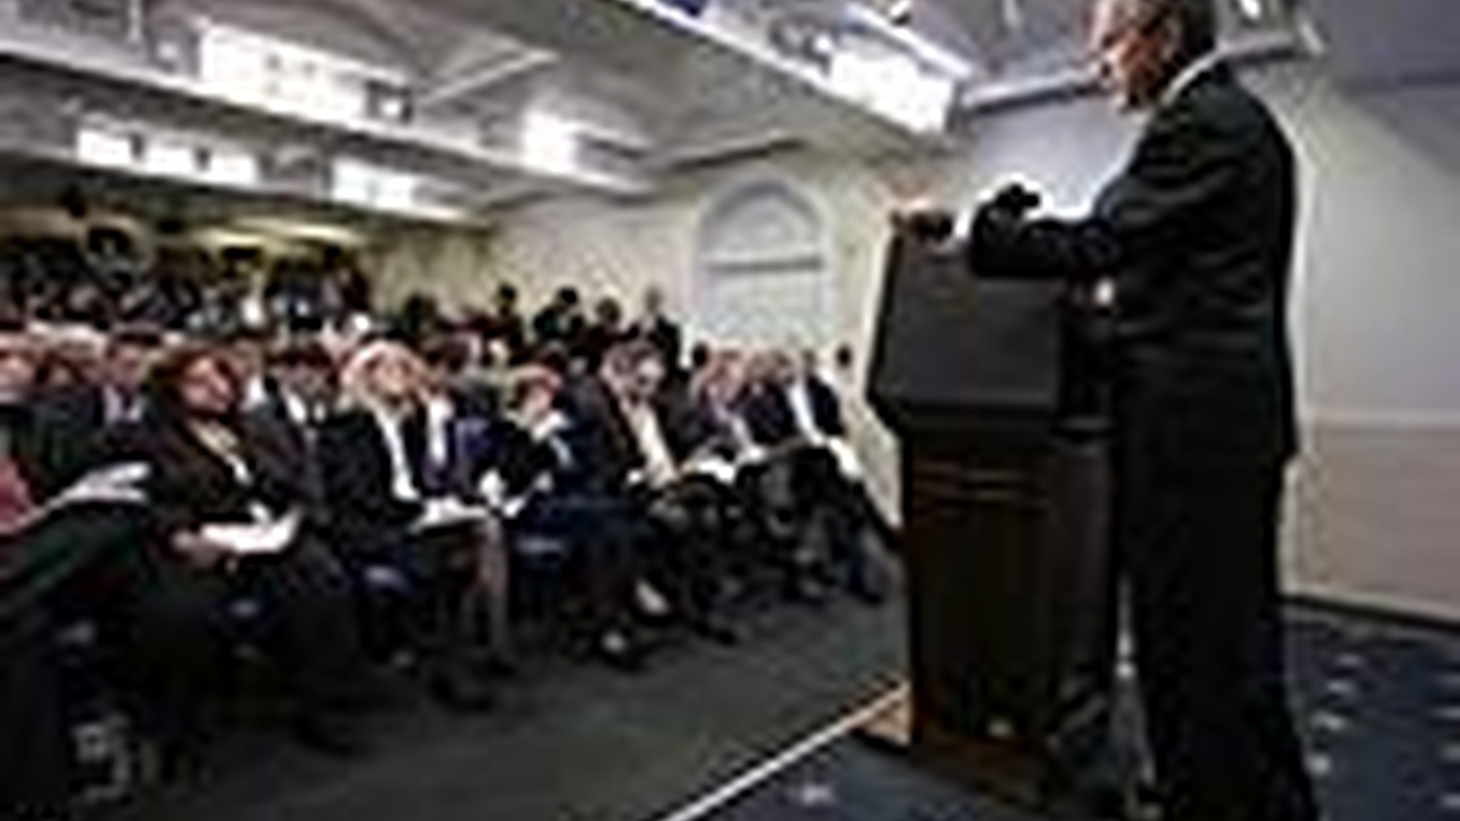 The CIA says Iran is not trying to build nuclear weapons any more, but President Bush says it's still a real threat to the rest of the world. We look at how the latest National Intelligence Estimate looks to America's friends and potential enemies. Also, with the first voting less than a month away, five Republican candidates have a shot at primary victories.  Today, at its special air time of 1pm.